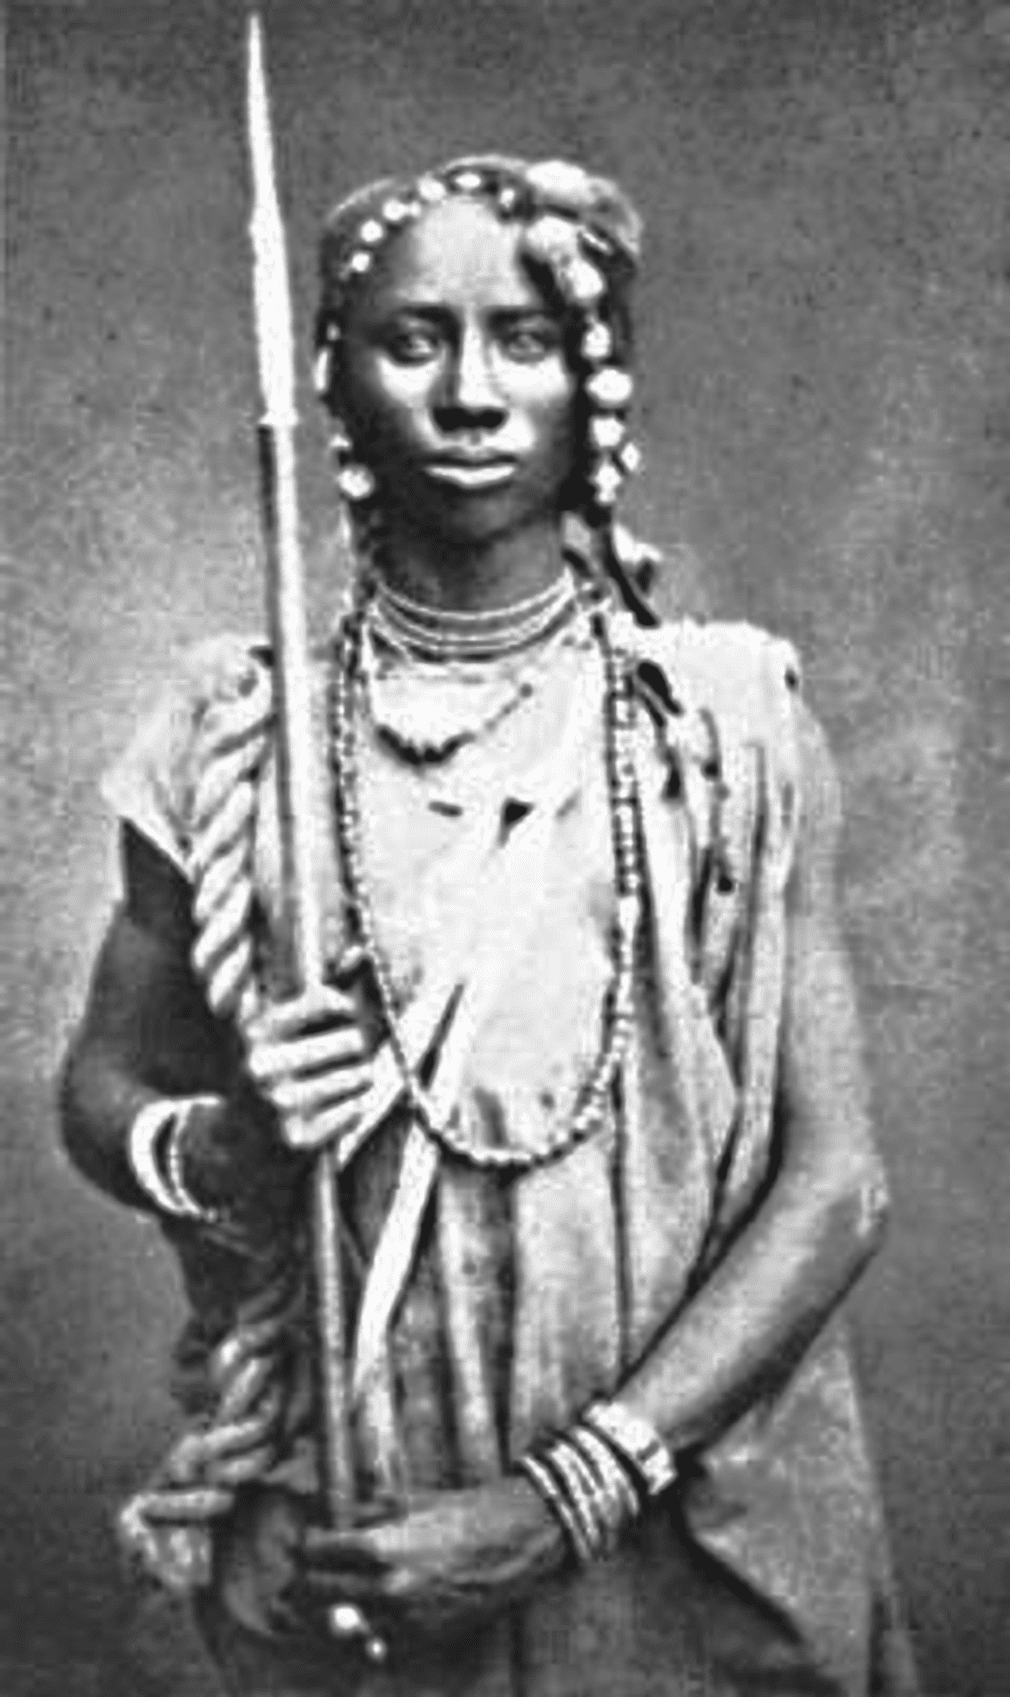 Image [Seh-Dong-Hong-Beh, leader of the Dahomey Amazons]